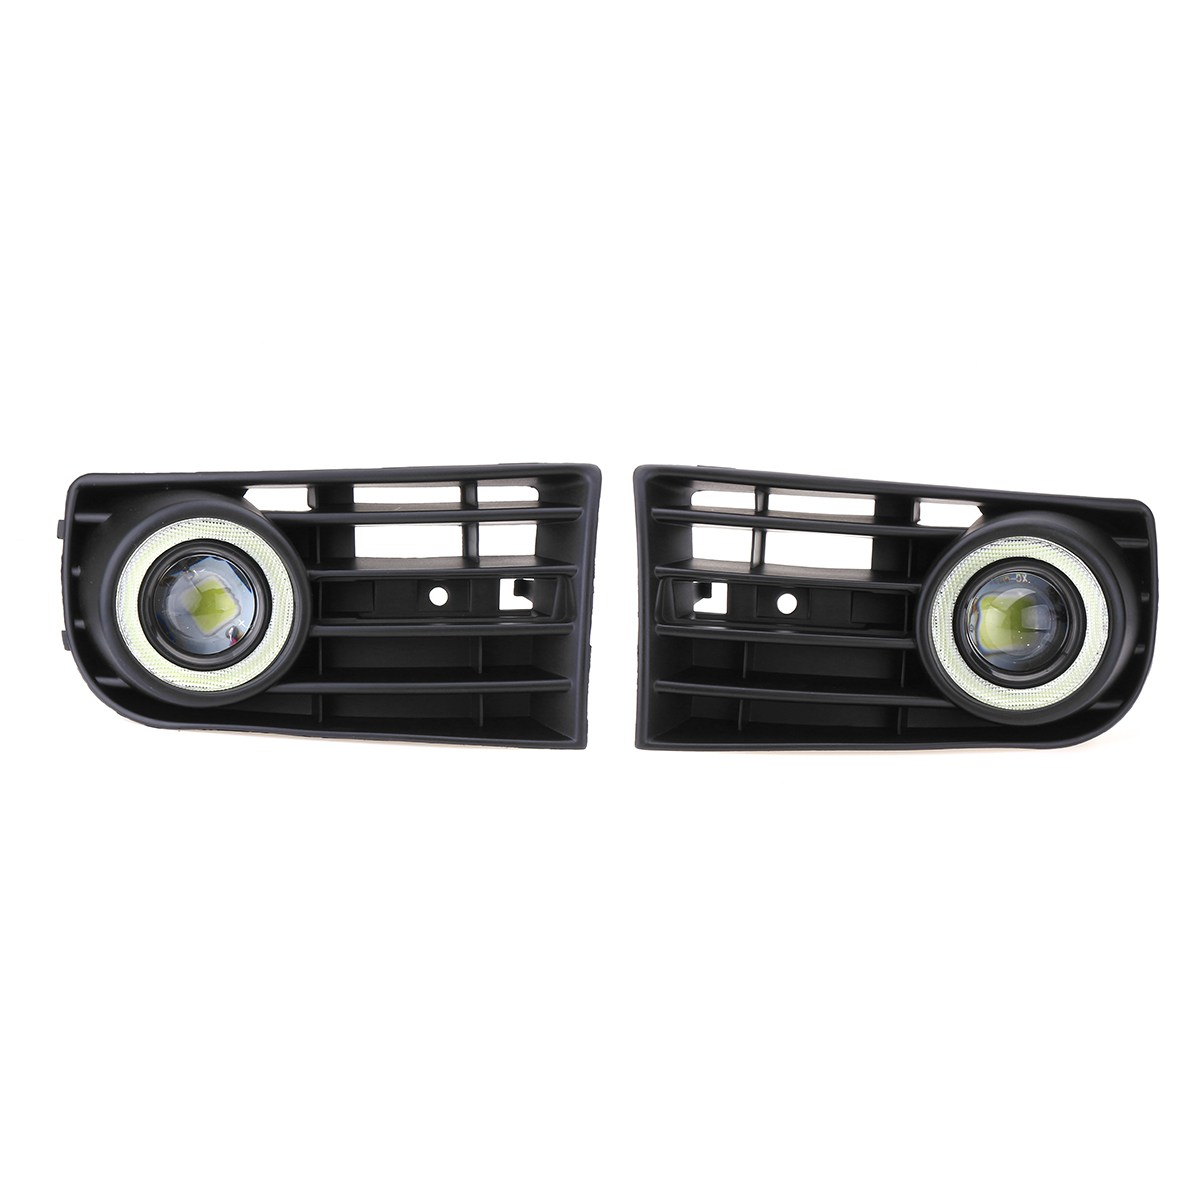 Pair Car Fog Lights Grille LED Halo Angel Eye Lamp + Wring Kits For VW Golf 5 MK5 2003-2009 white fog light grille foglamps grill cover for vw golf rabbit mk5 2003 2009 with hardness switch h3 bulbs p98